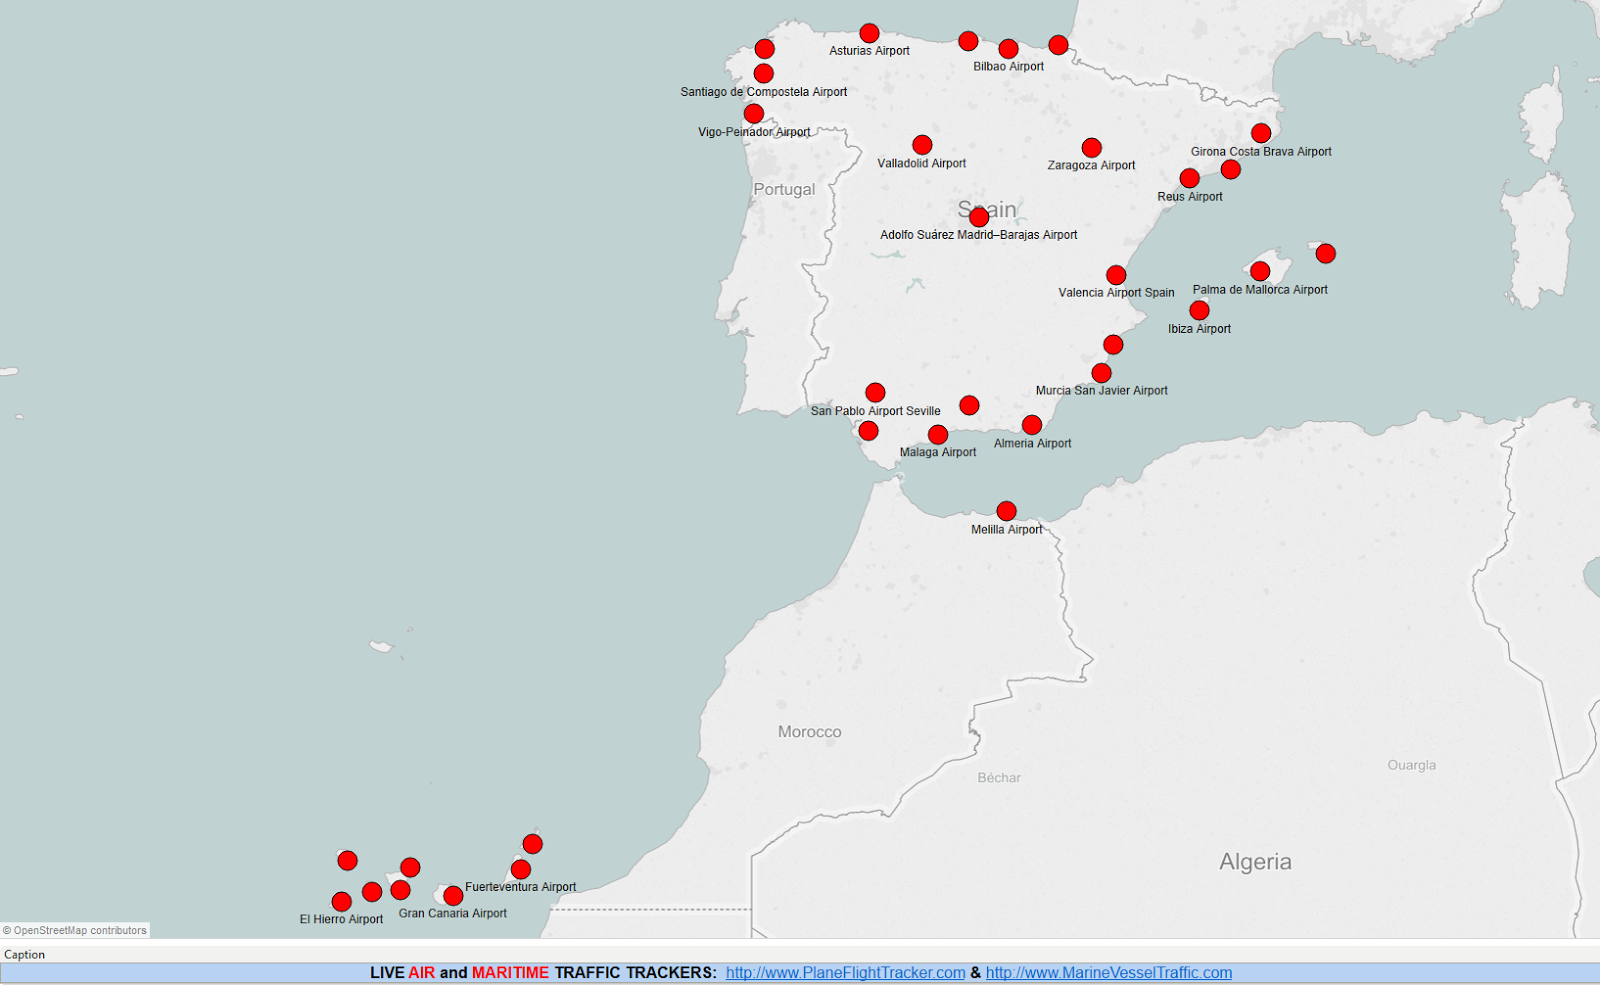 Map Of Spain Showing Airports.Spain Airports Map Plane Flight Tracker